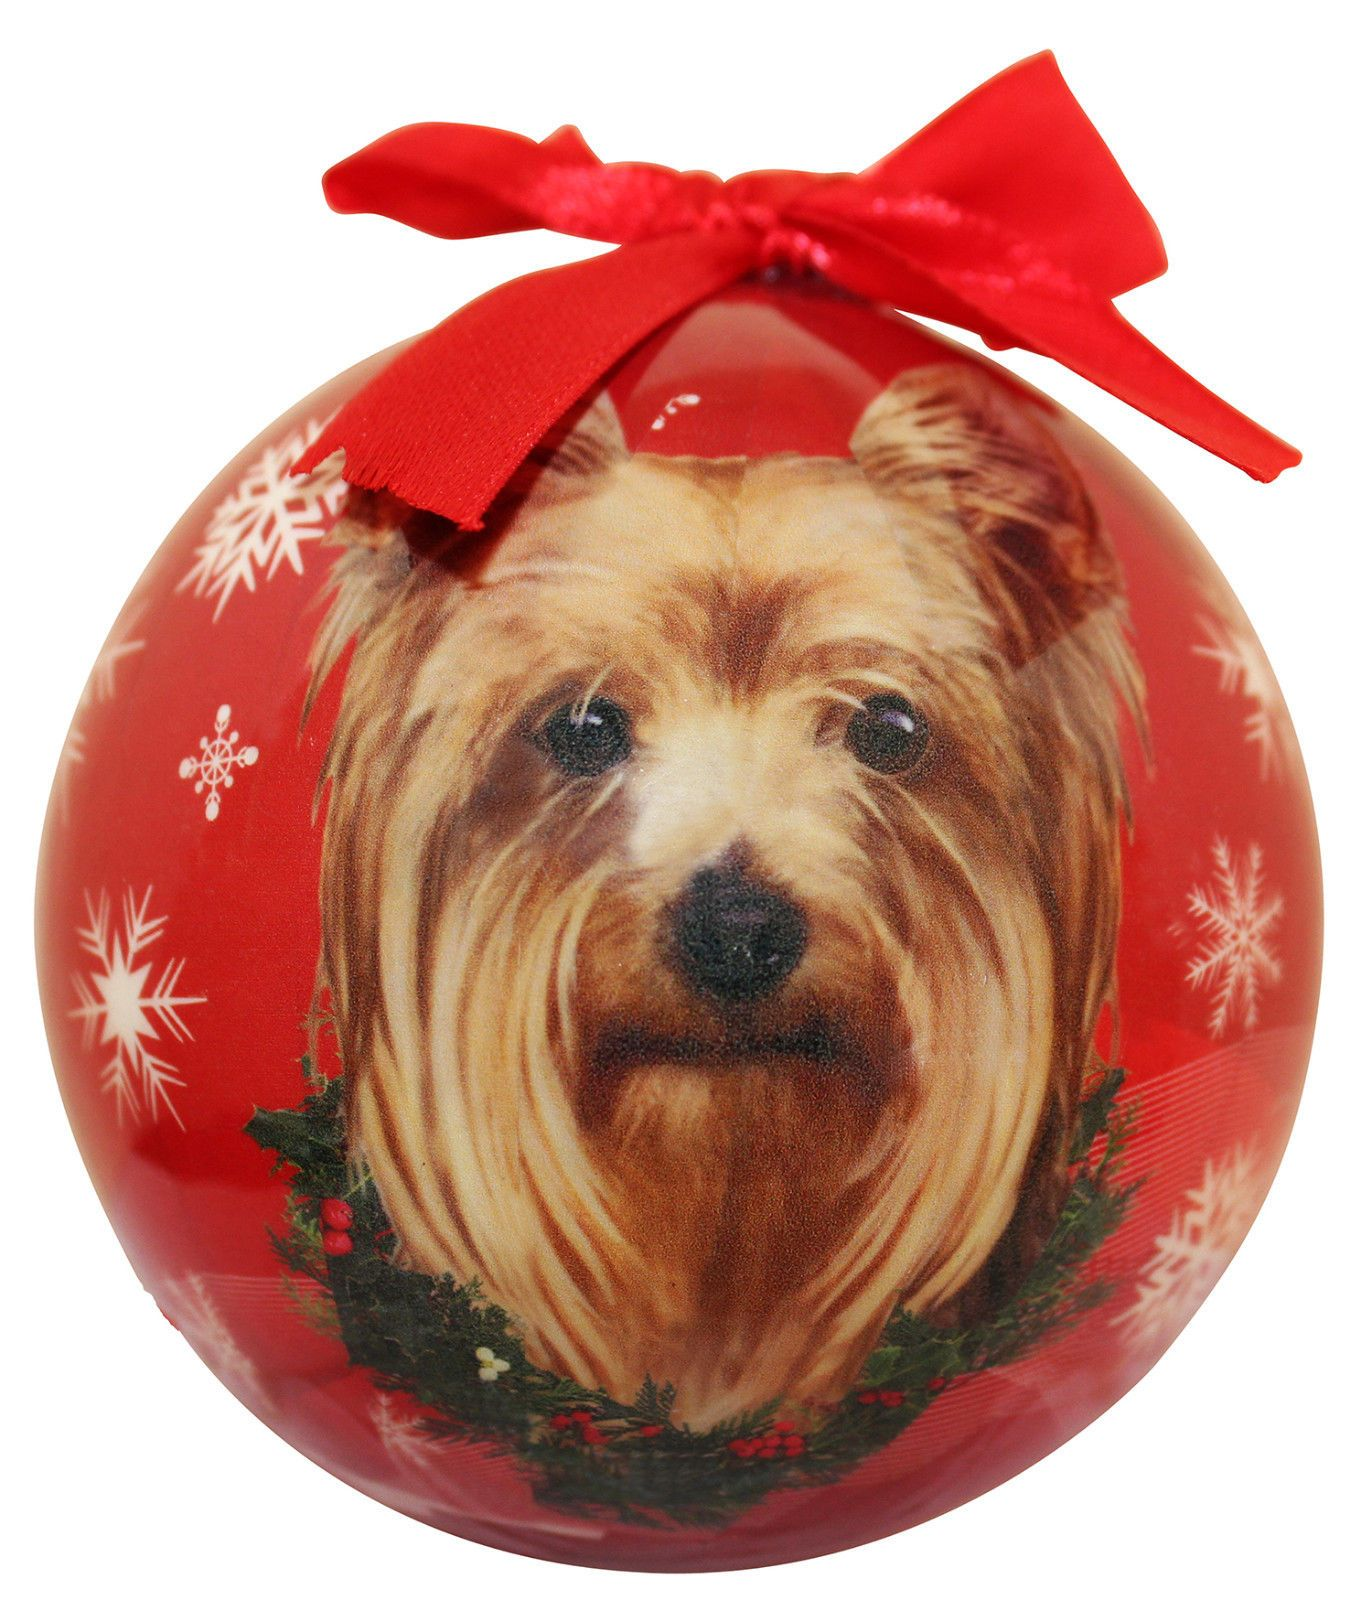 Details About Yorkie Christmas Ball Ornament Dog Holiday Xmas Yorkshire Terrier Christmas Ornaments Christmas Balls Personalized Ornaments